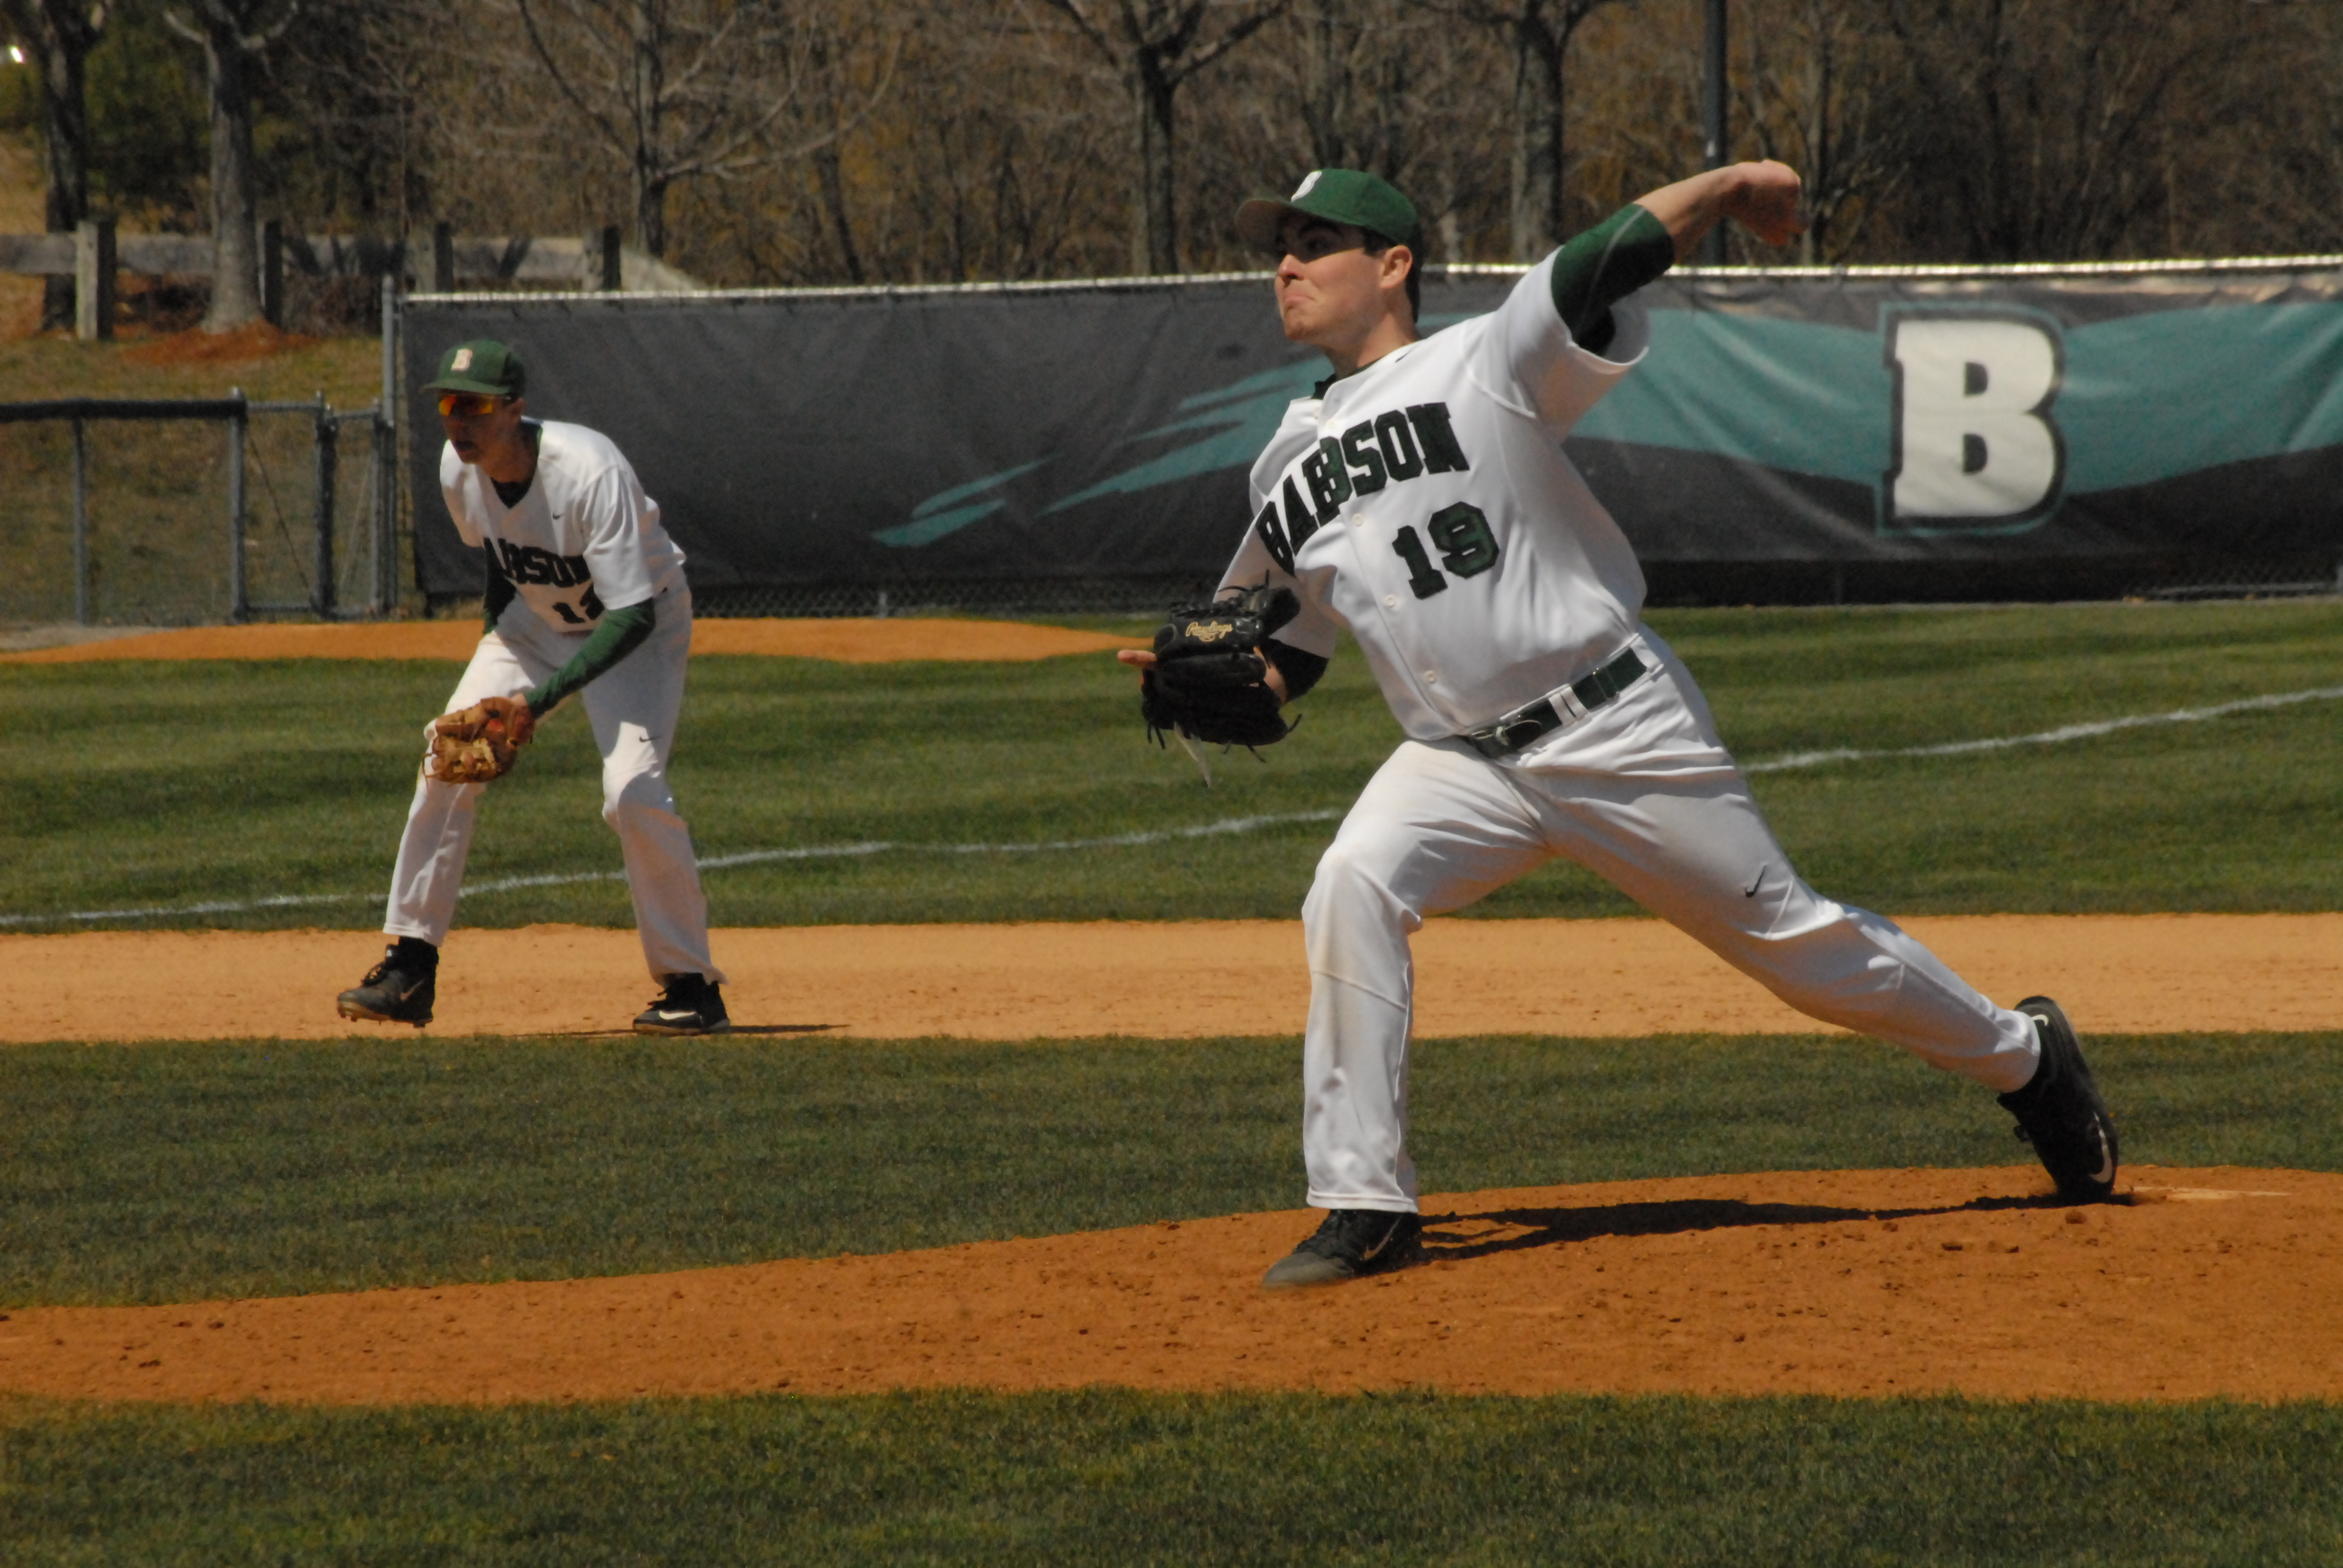 Genaro Pitches at Babson College